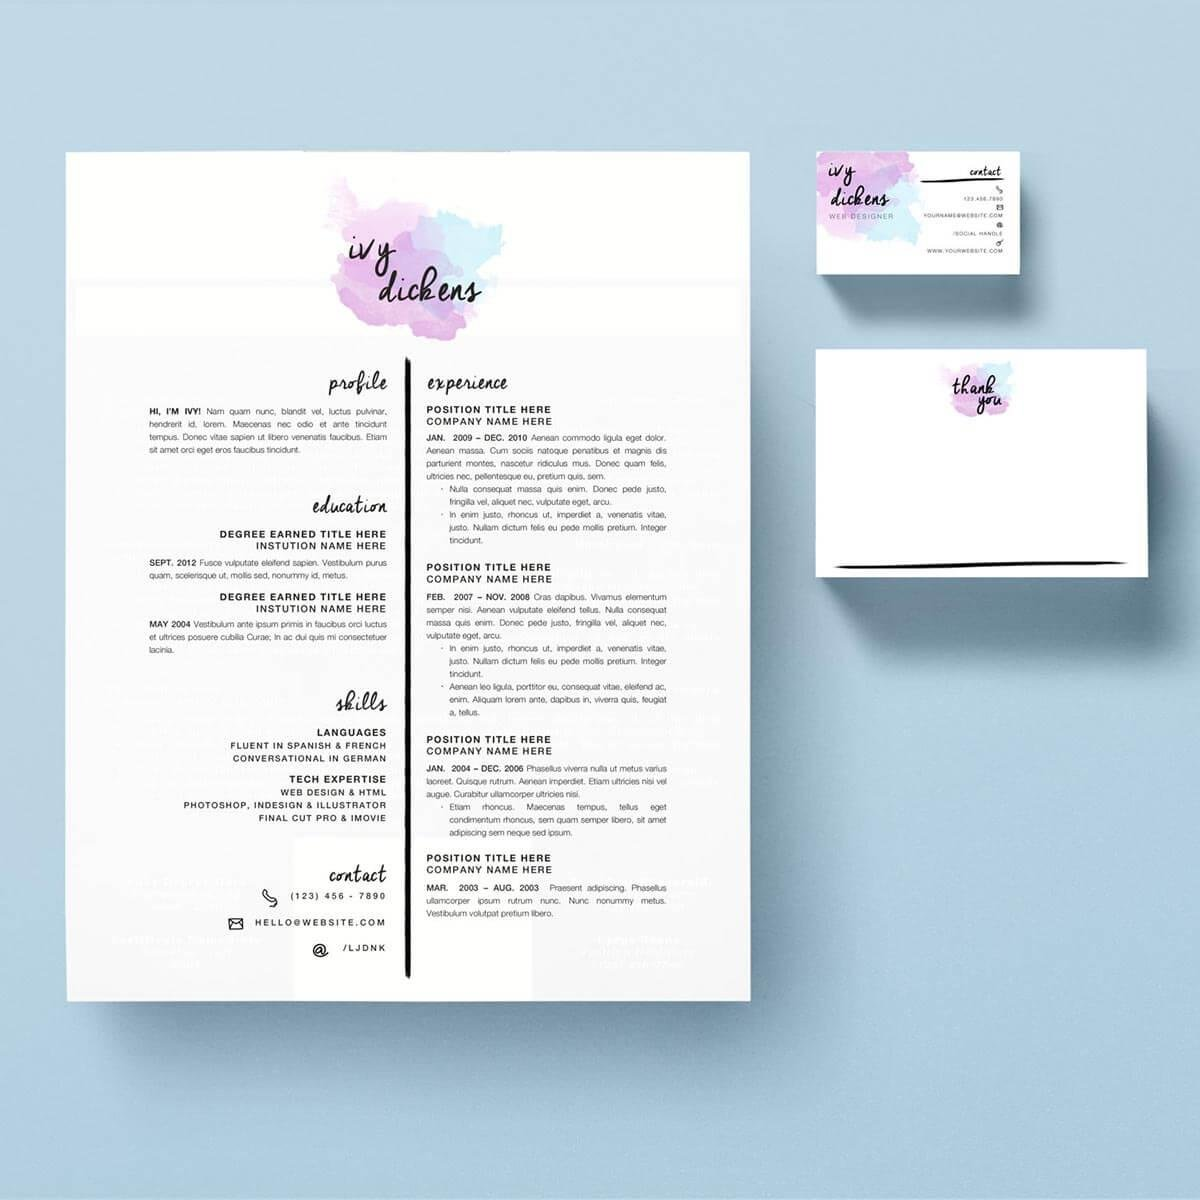 Best One Page Resume Template With Colorful Touch. U201c